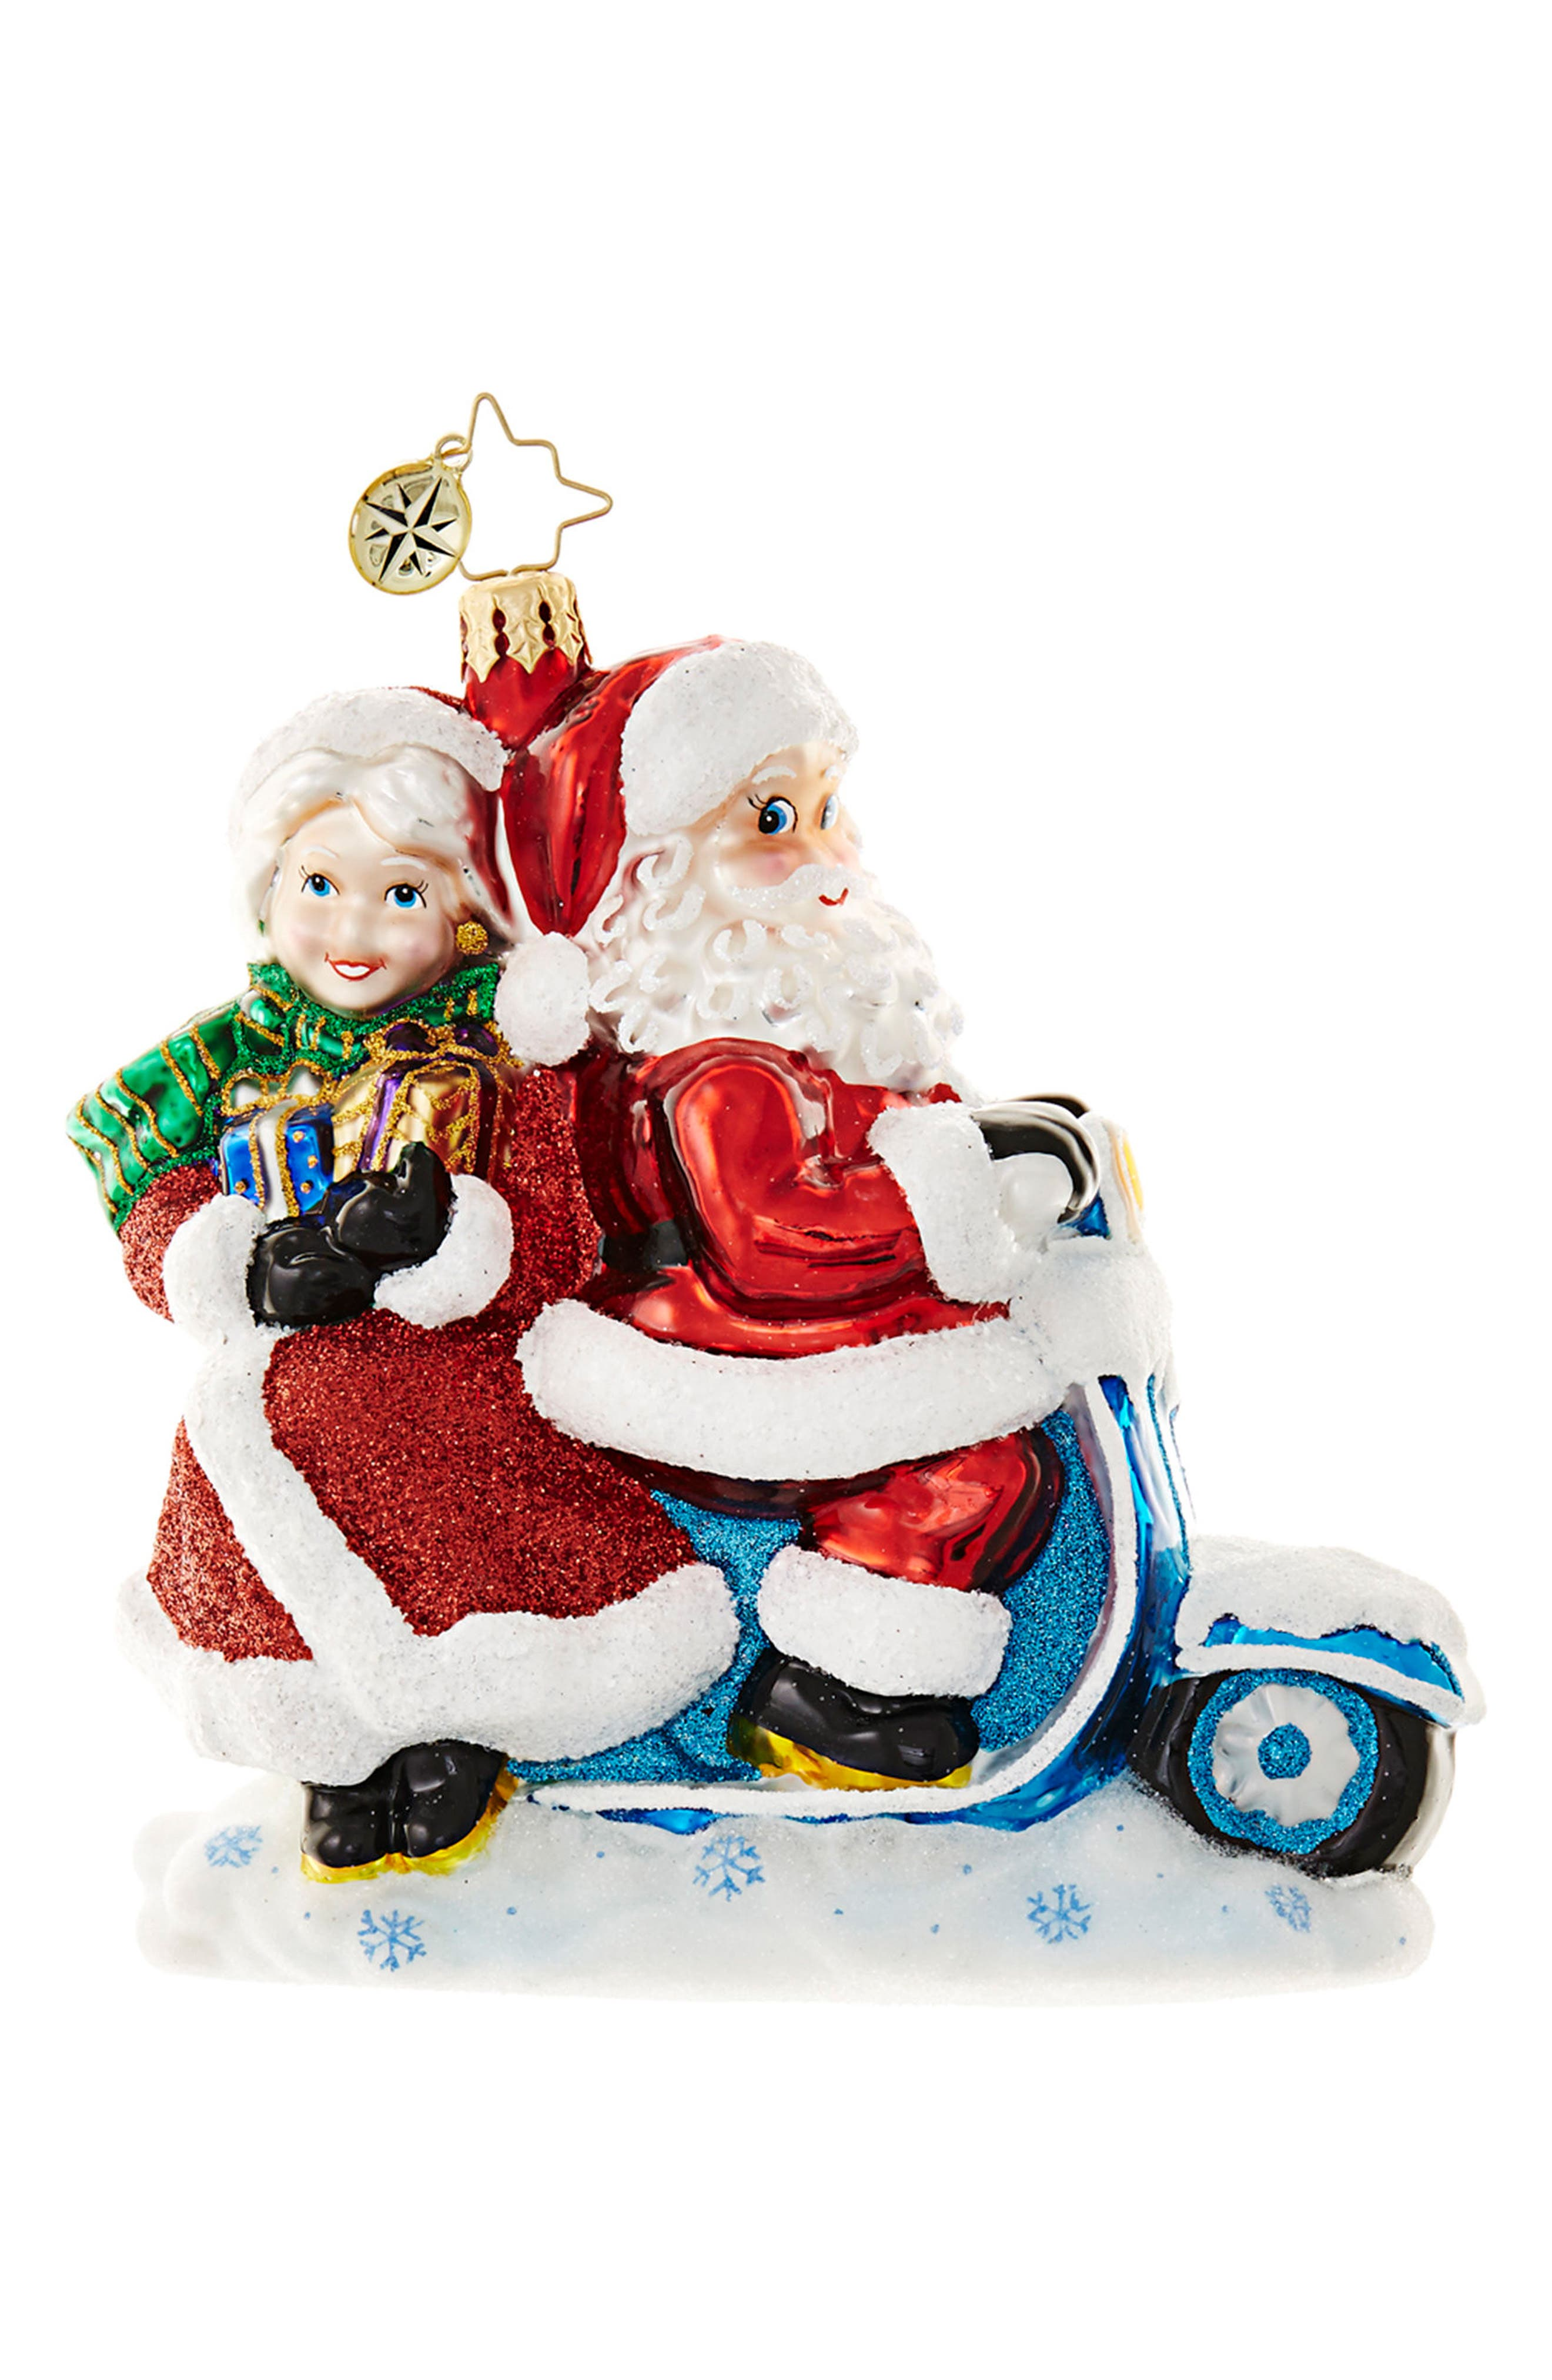 Main Image - Christopher Radko Scooter for 2 Santa Claus & Mrs. Claus Ornament